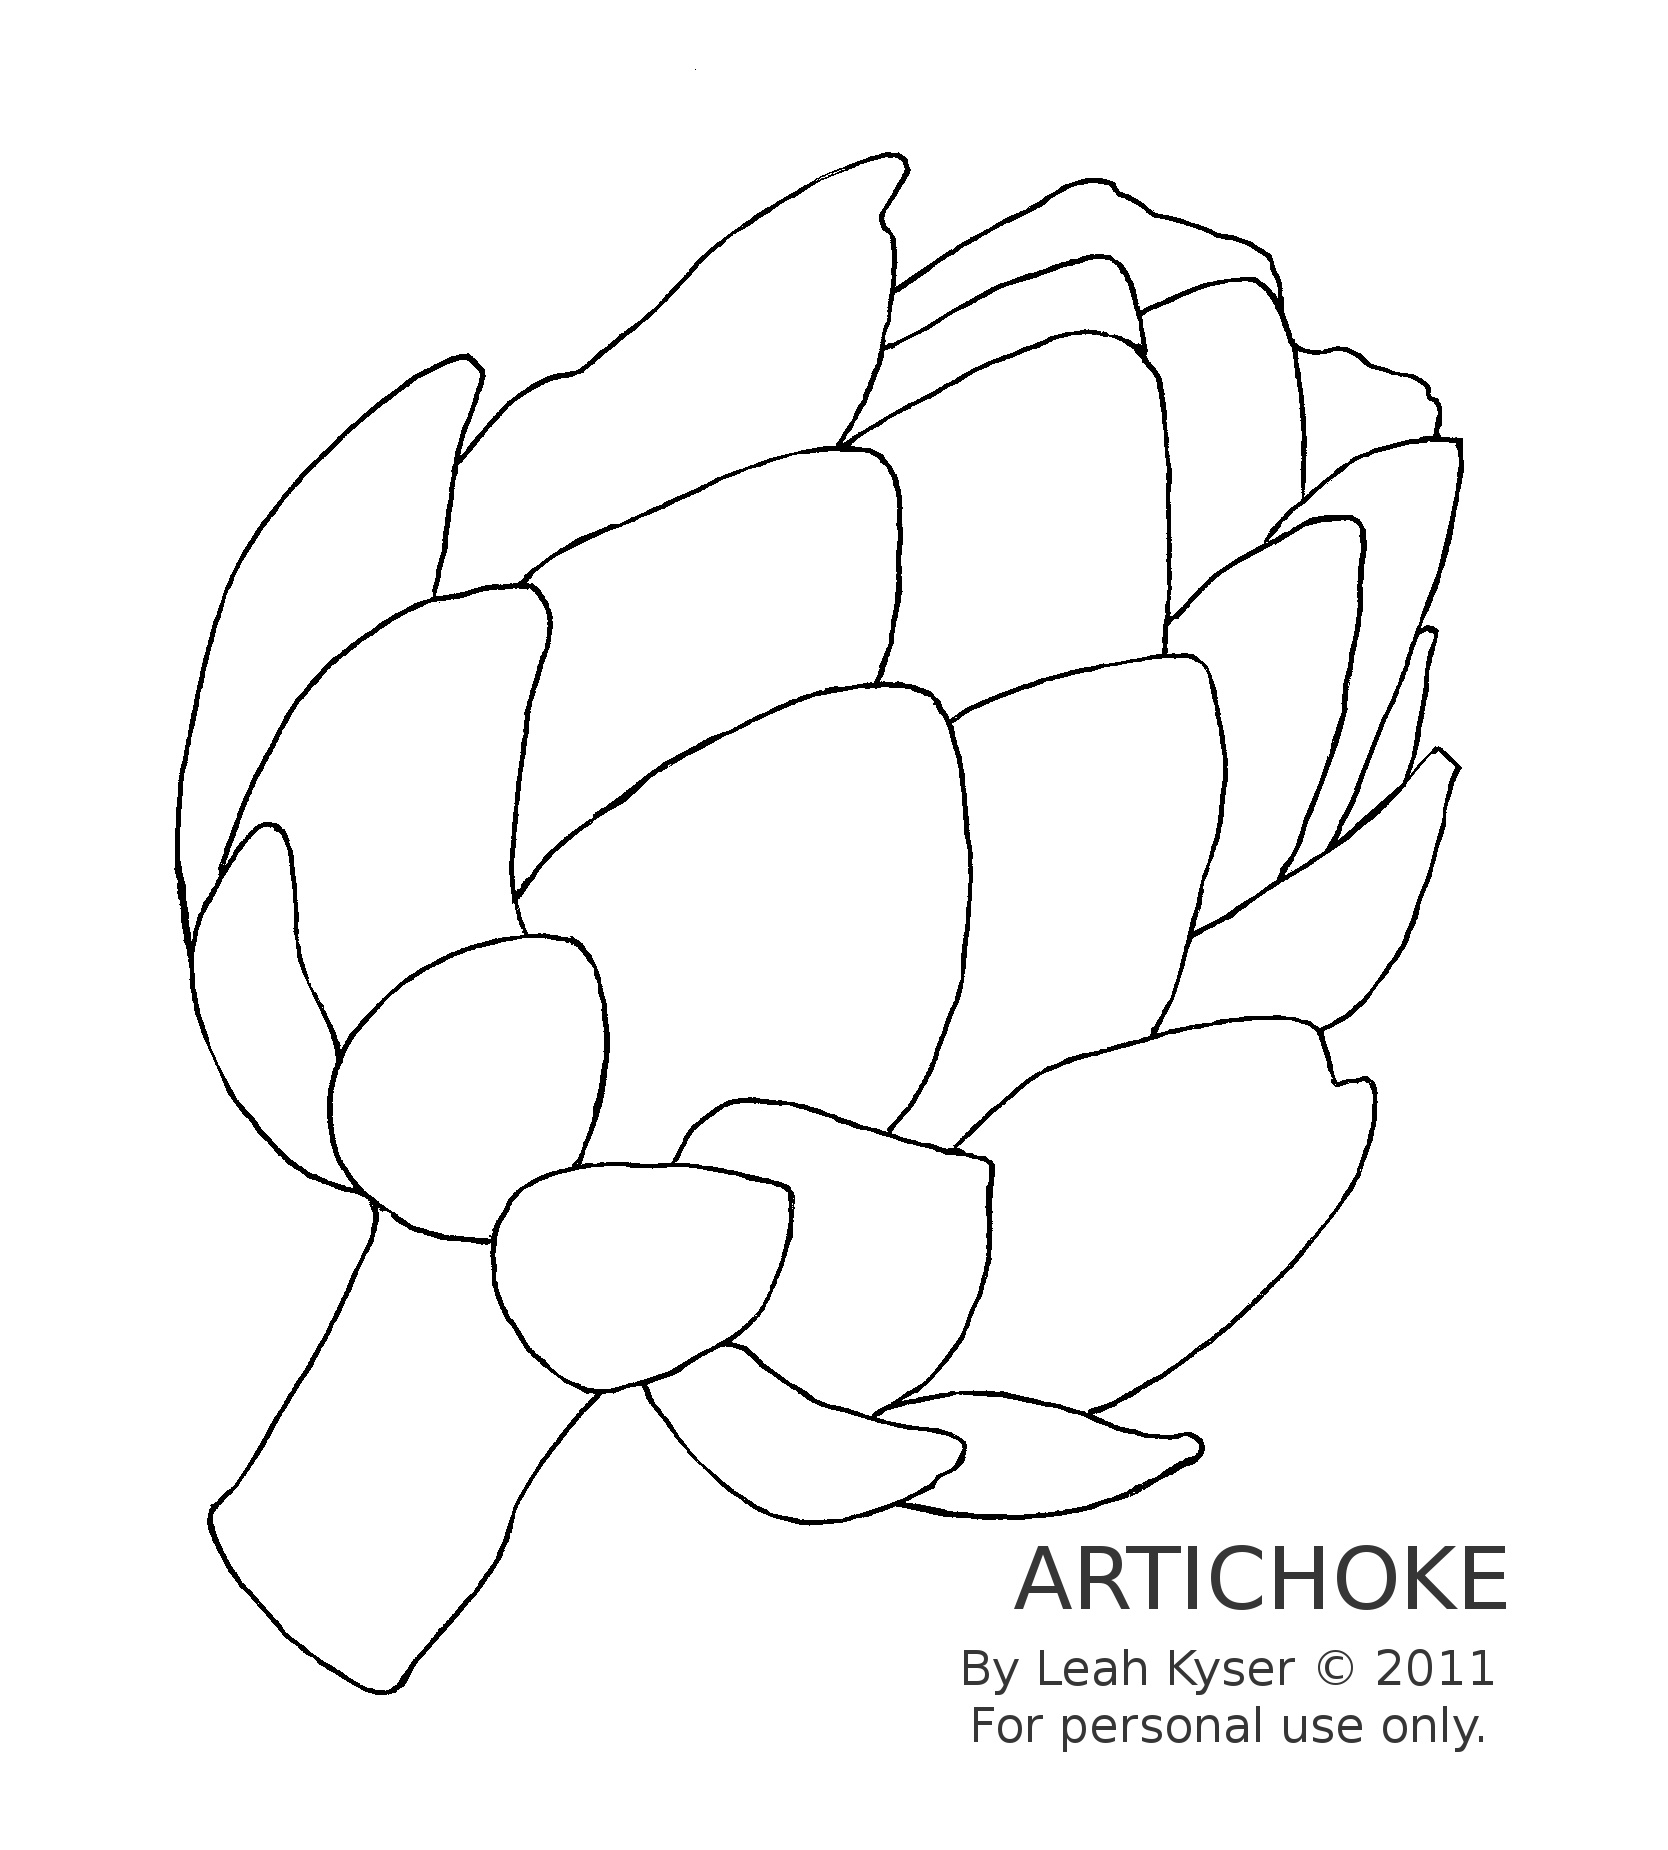 Artichoke Drawing at GetDrawings com | Free for personal use